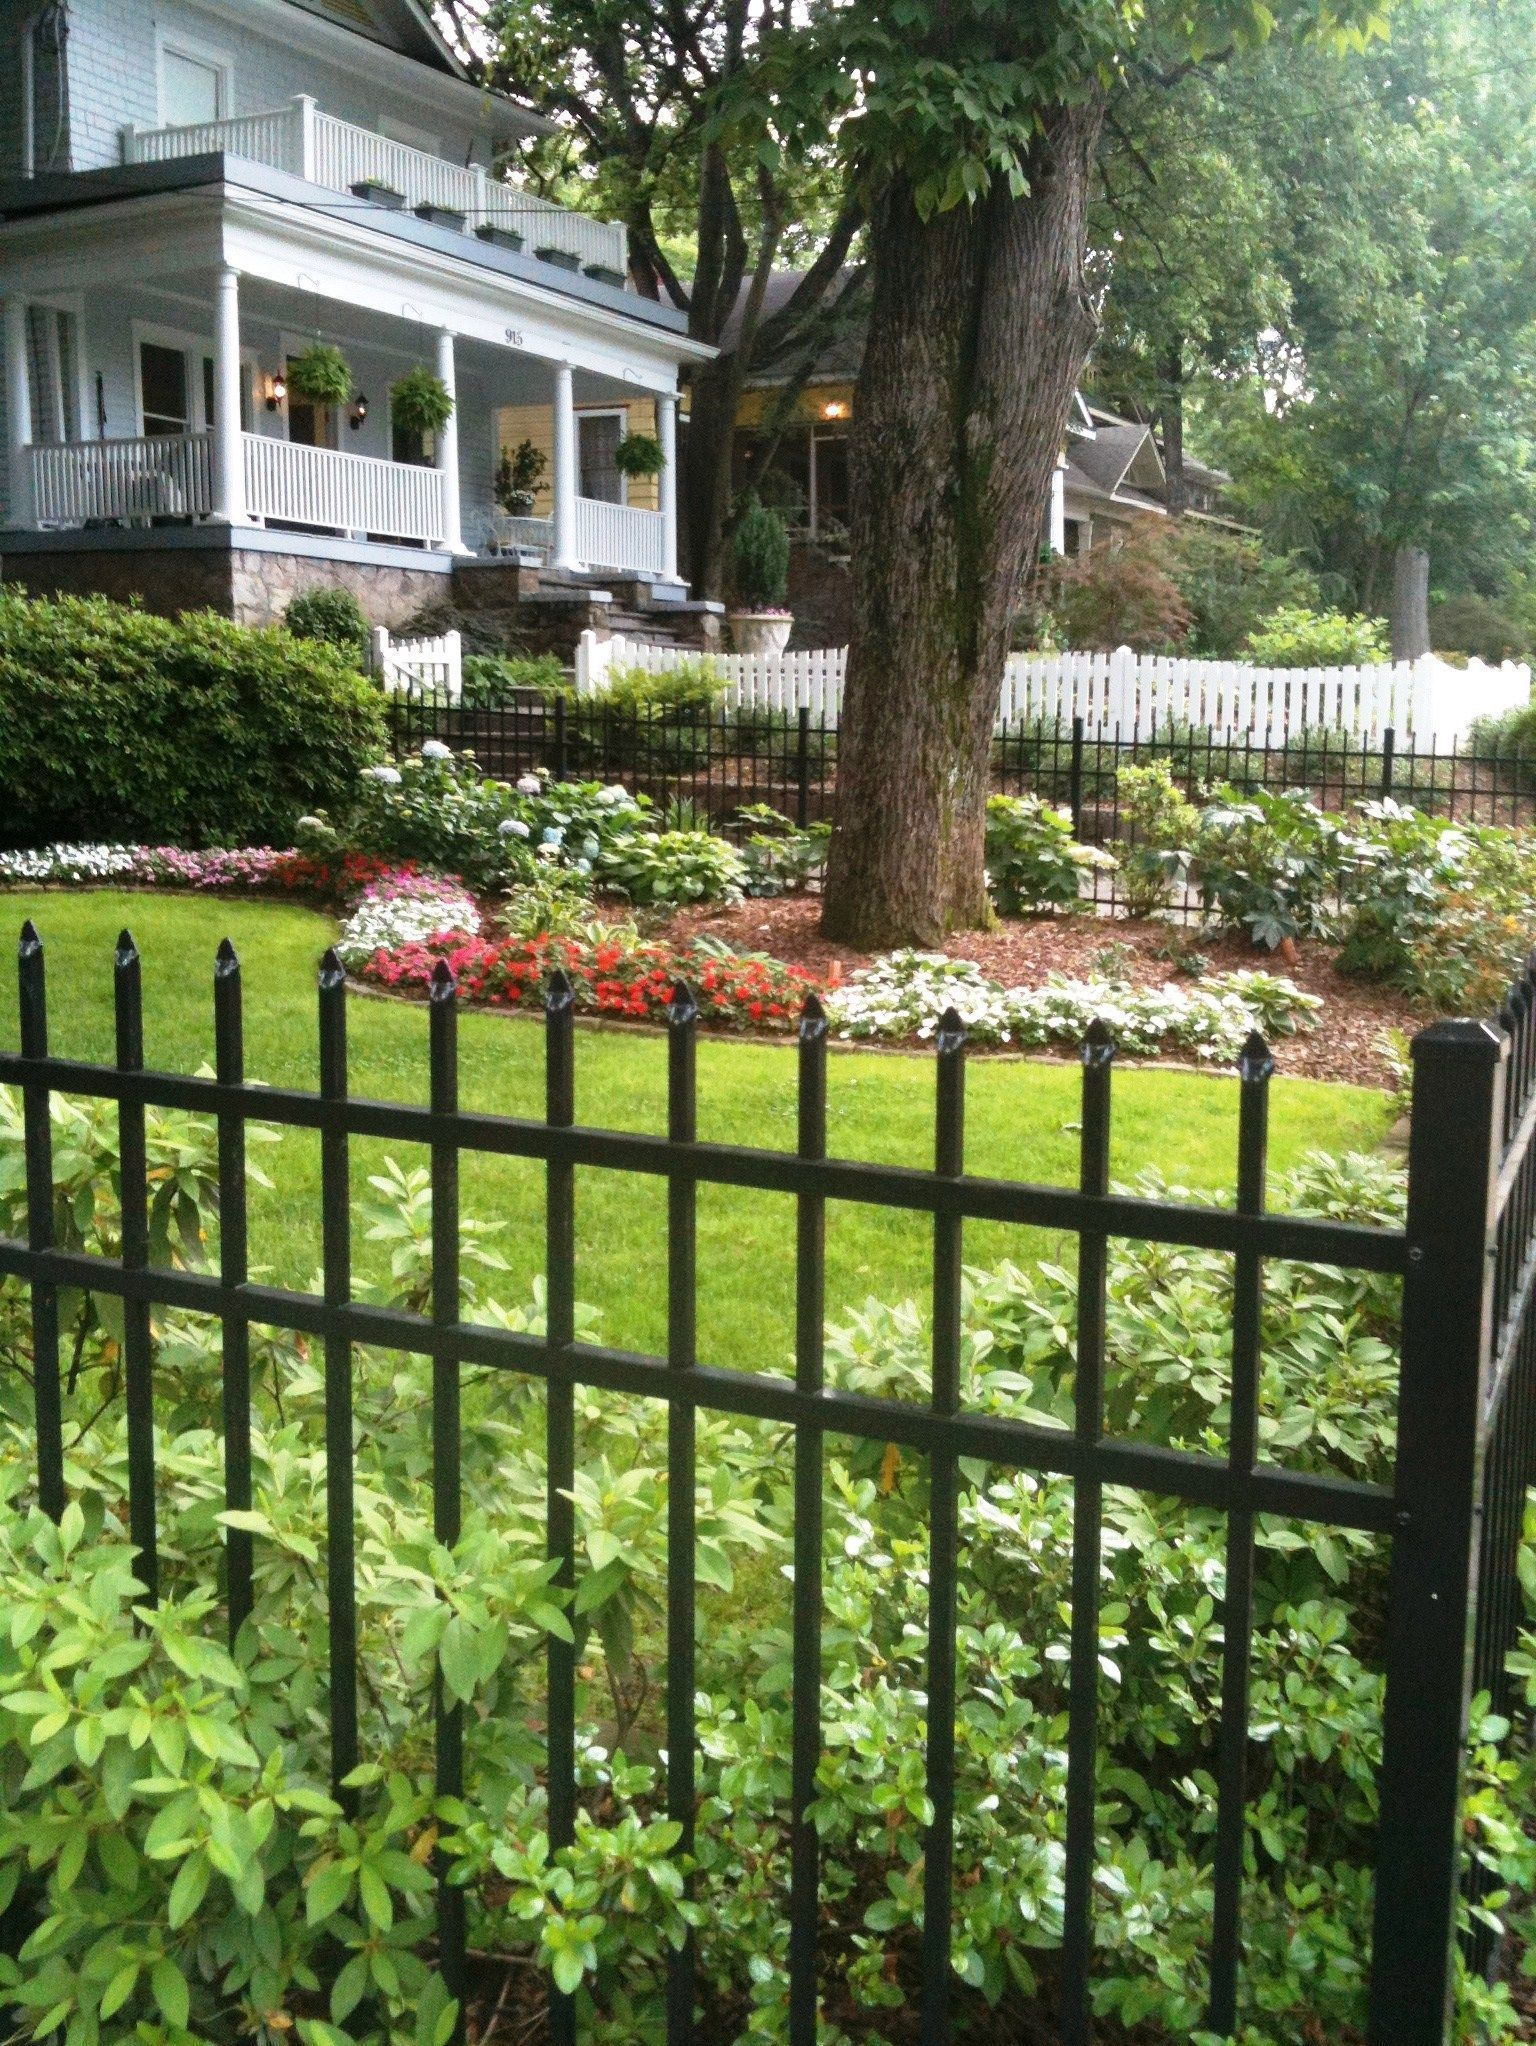 Shannon Holmes RealtySouth image of home with great curb appeal